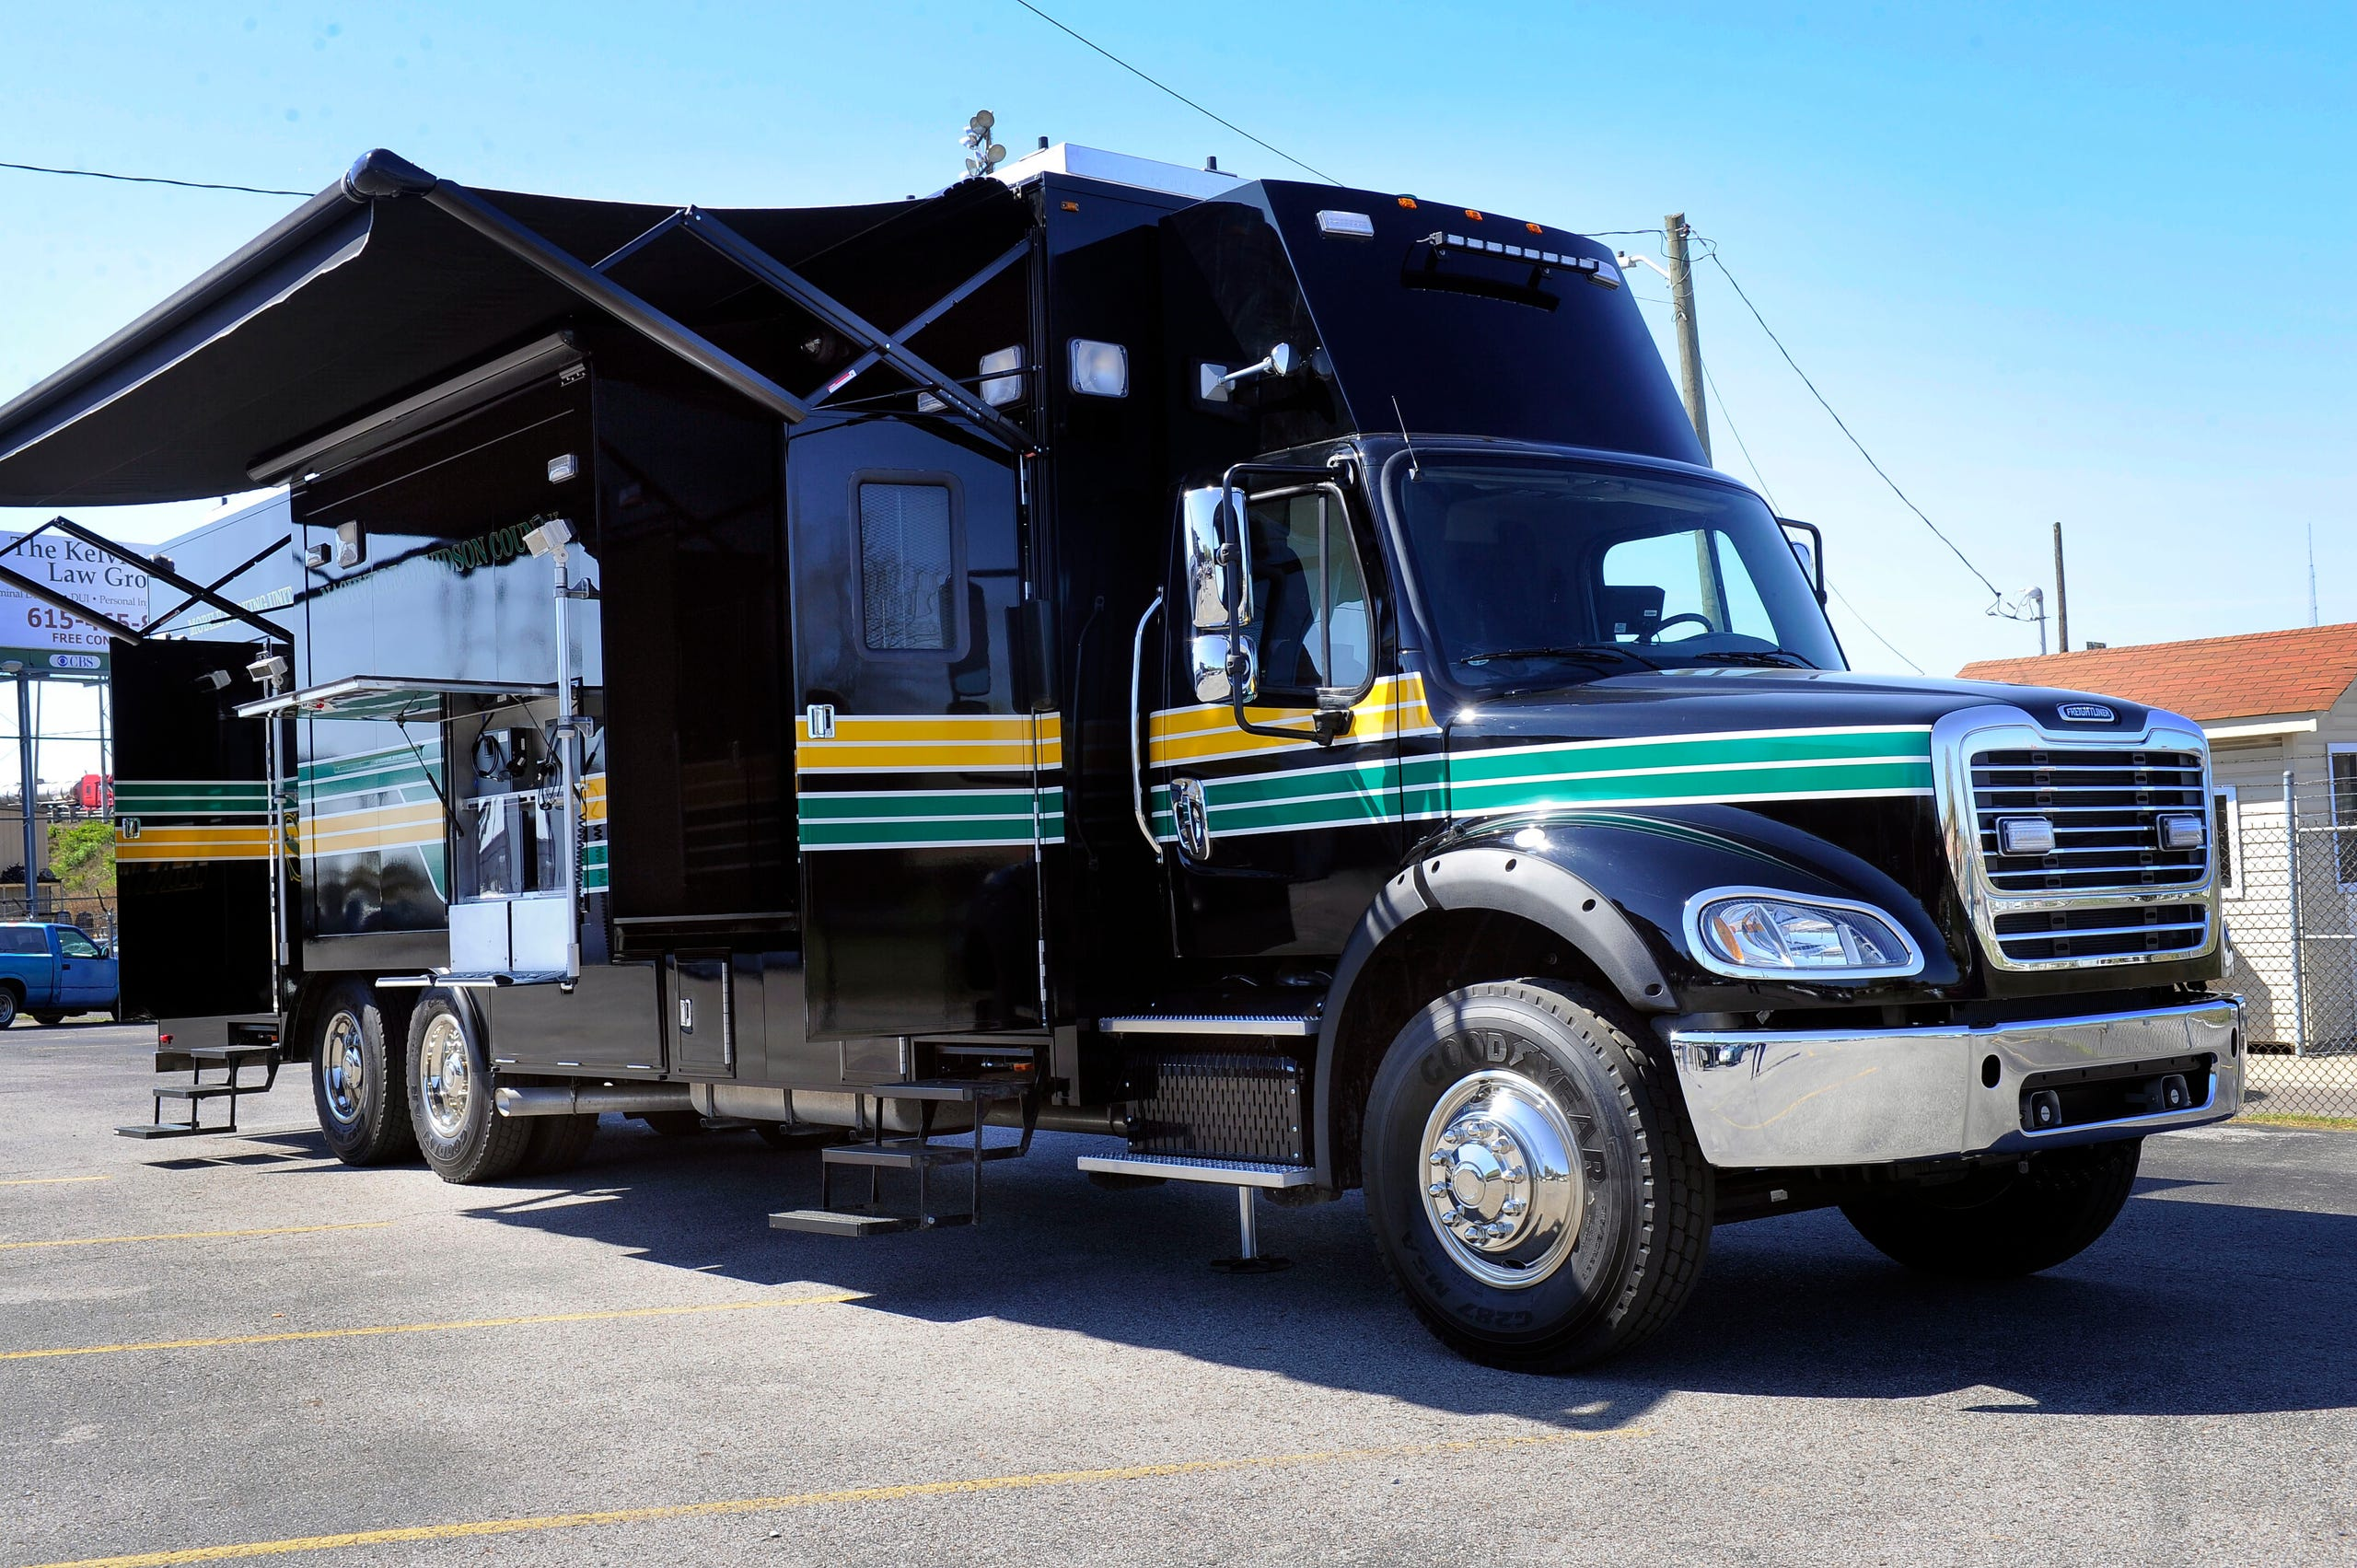 Mobile Booking Unit put in service by Davidson County